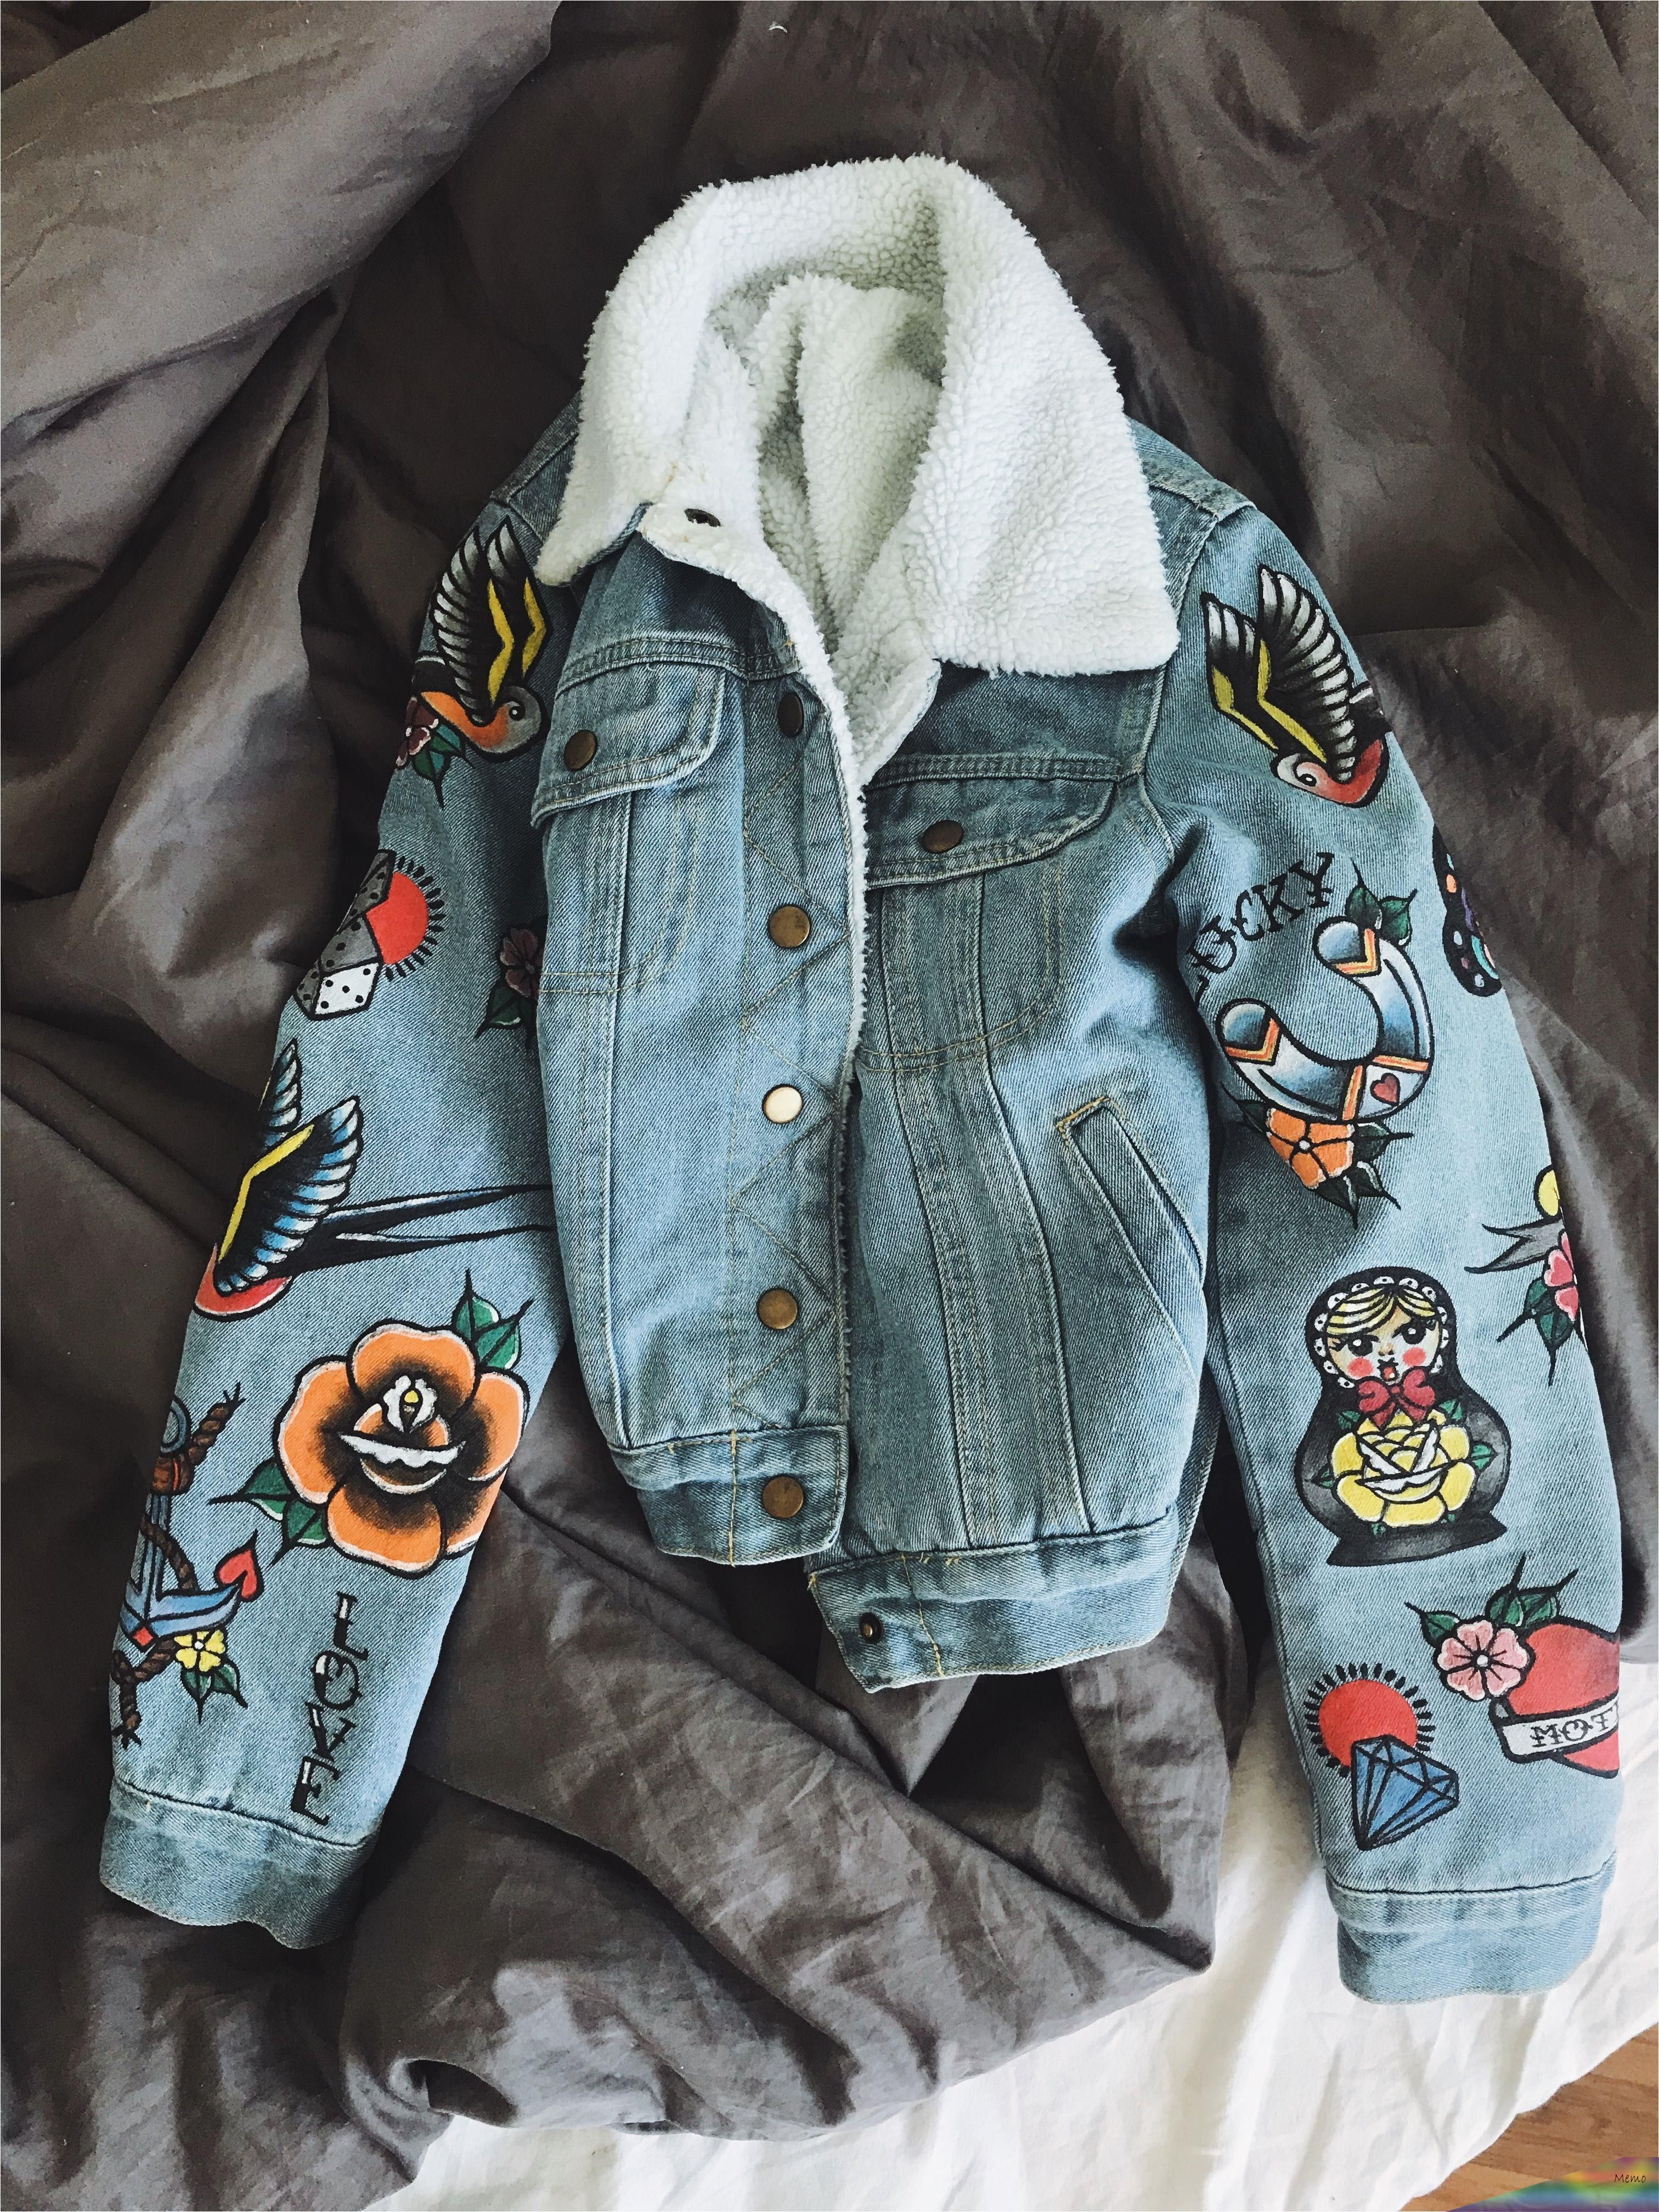 Apr 24 2020 This Pin Was Discovered By Alina Discover And Save Your Own Pins On Pinterest Denim Jacket Women Denim Jacket With Fur Diy Denim Jacket [ 4032 x 3024 Pixel ]